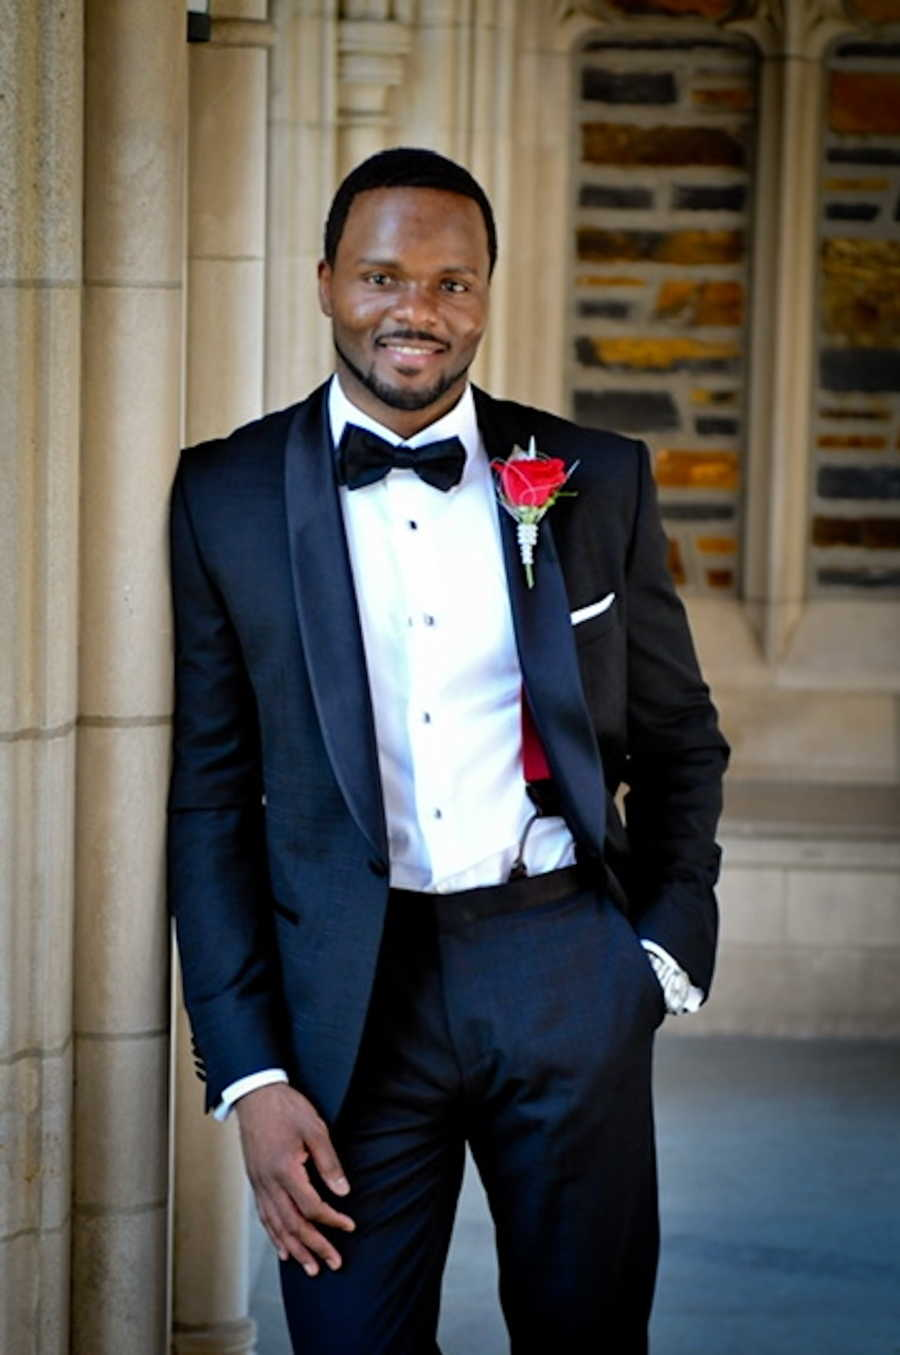 Man wearing black tuxedo with red rose smiling leaning against wall